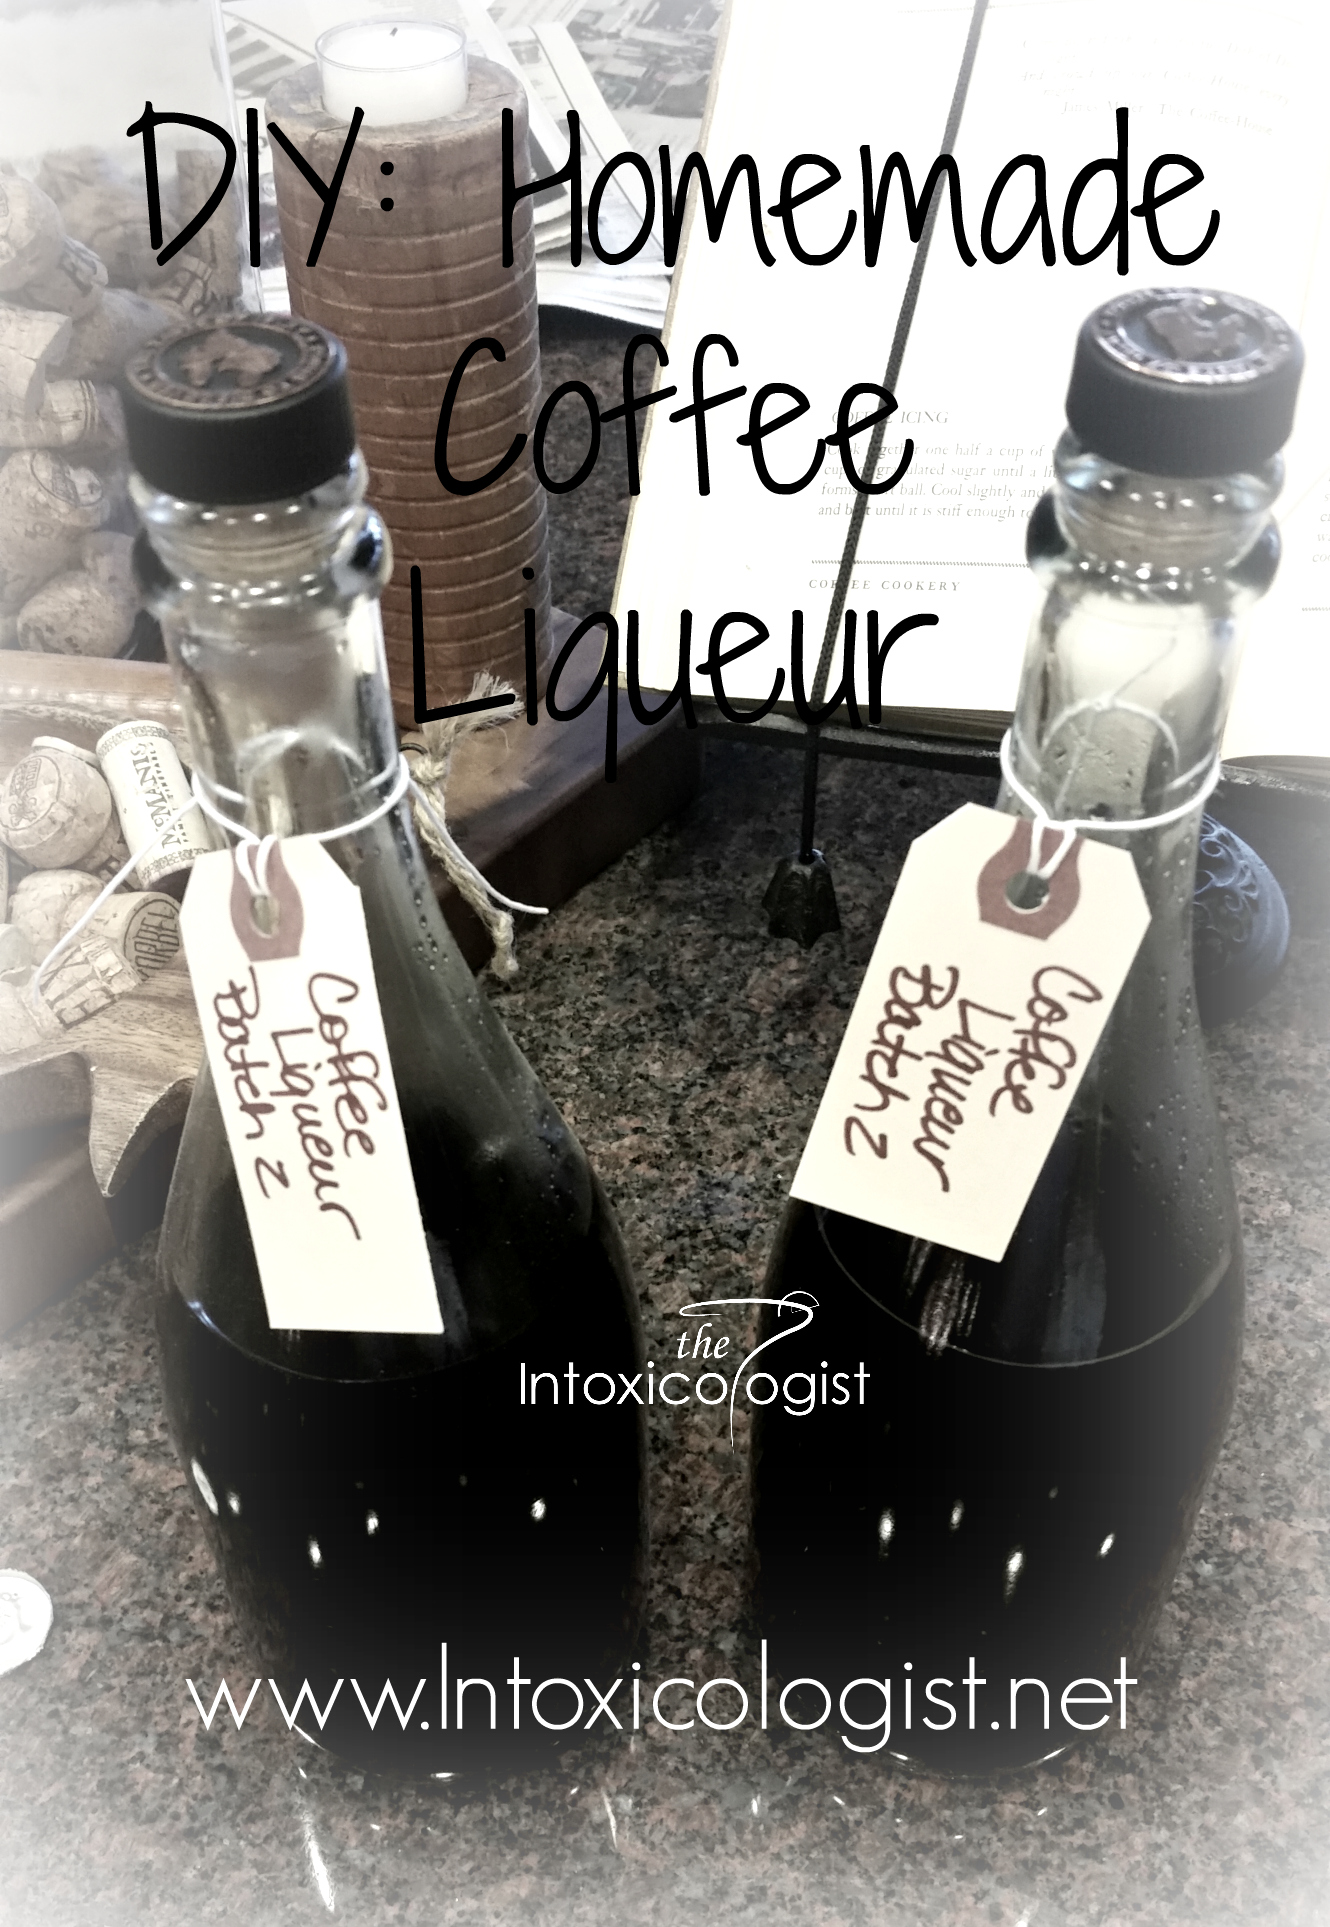 National Kahlua Day is February 27. Try your hand at making your own homemade coffee liqueur and try it in your favorite recipe.